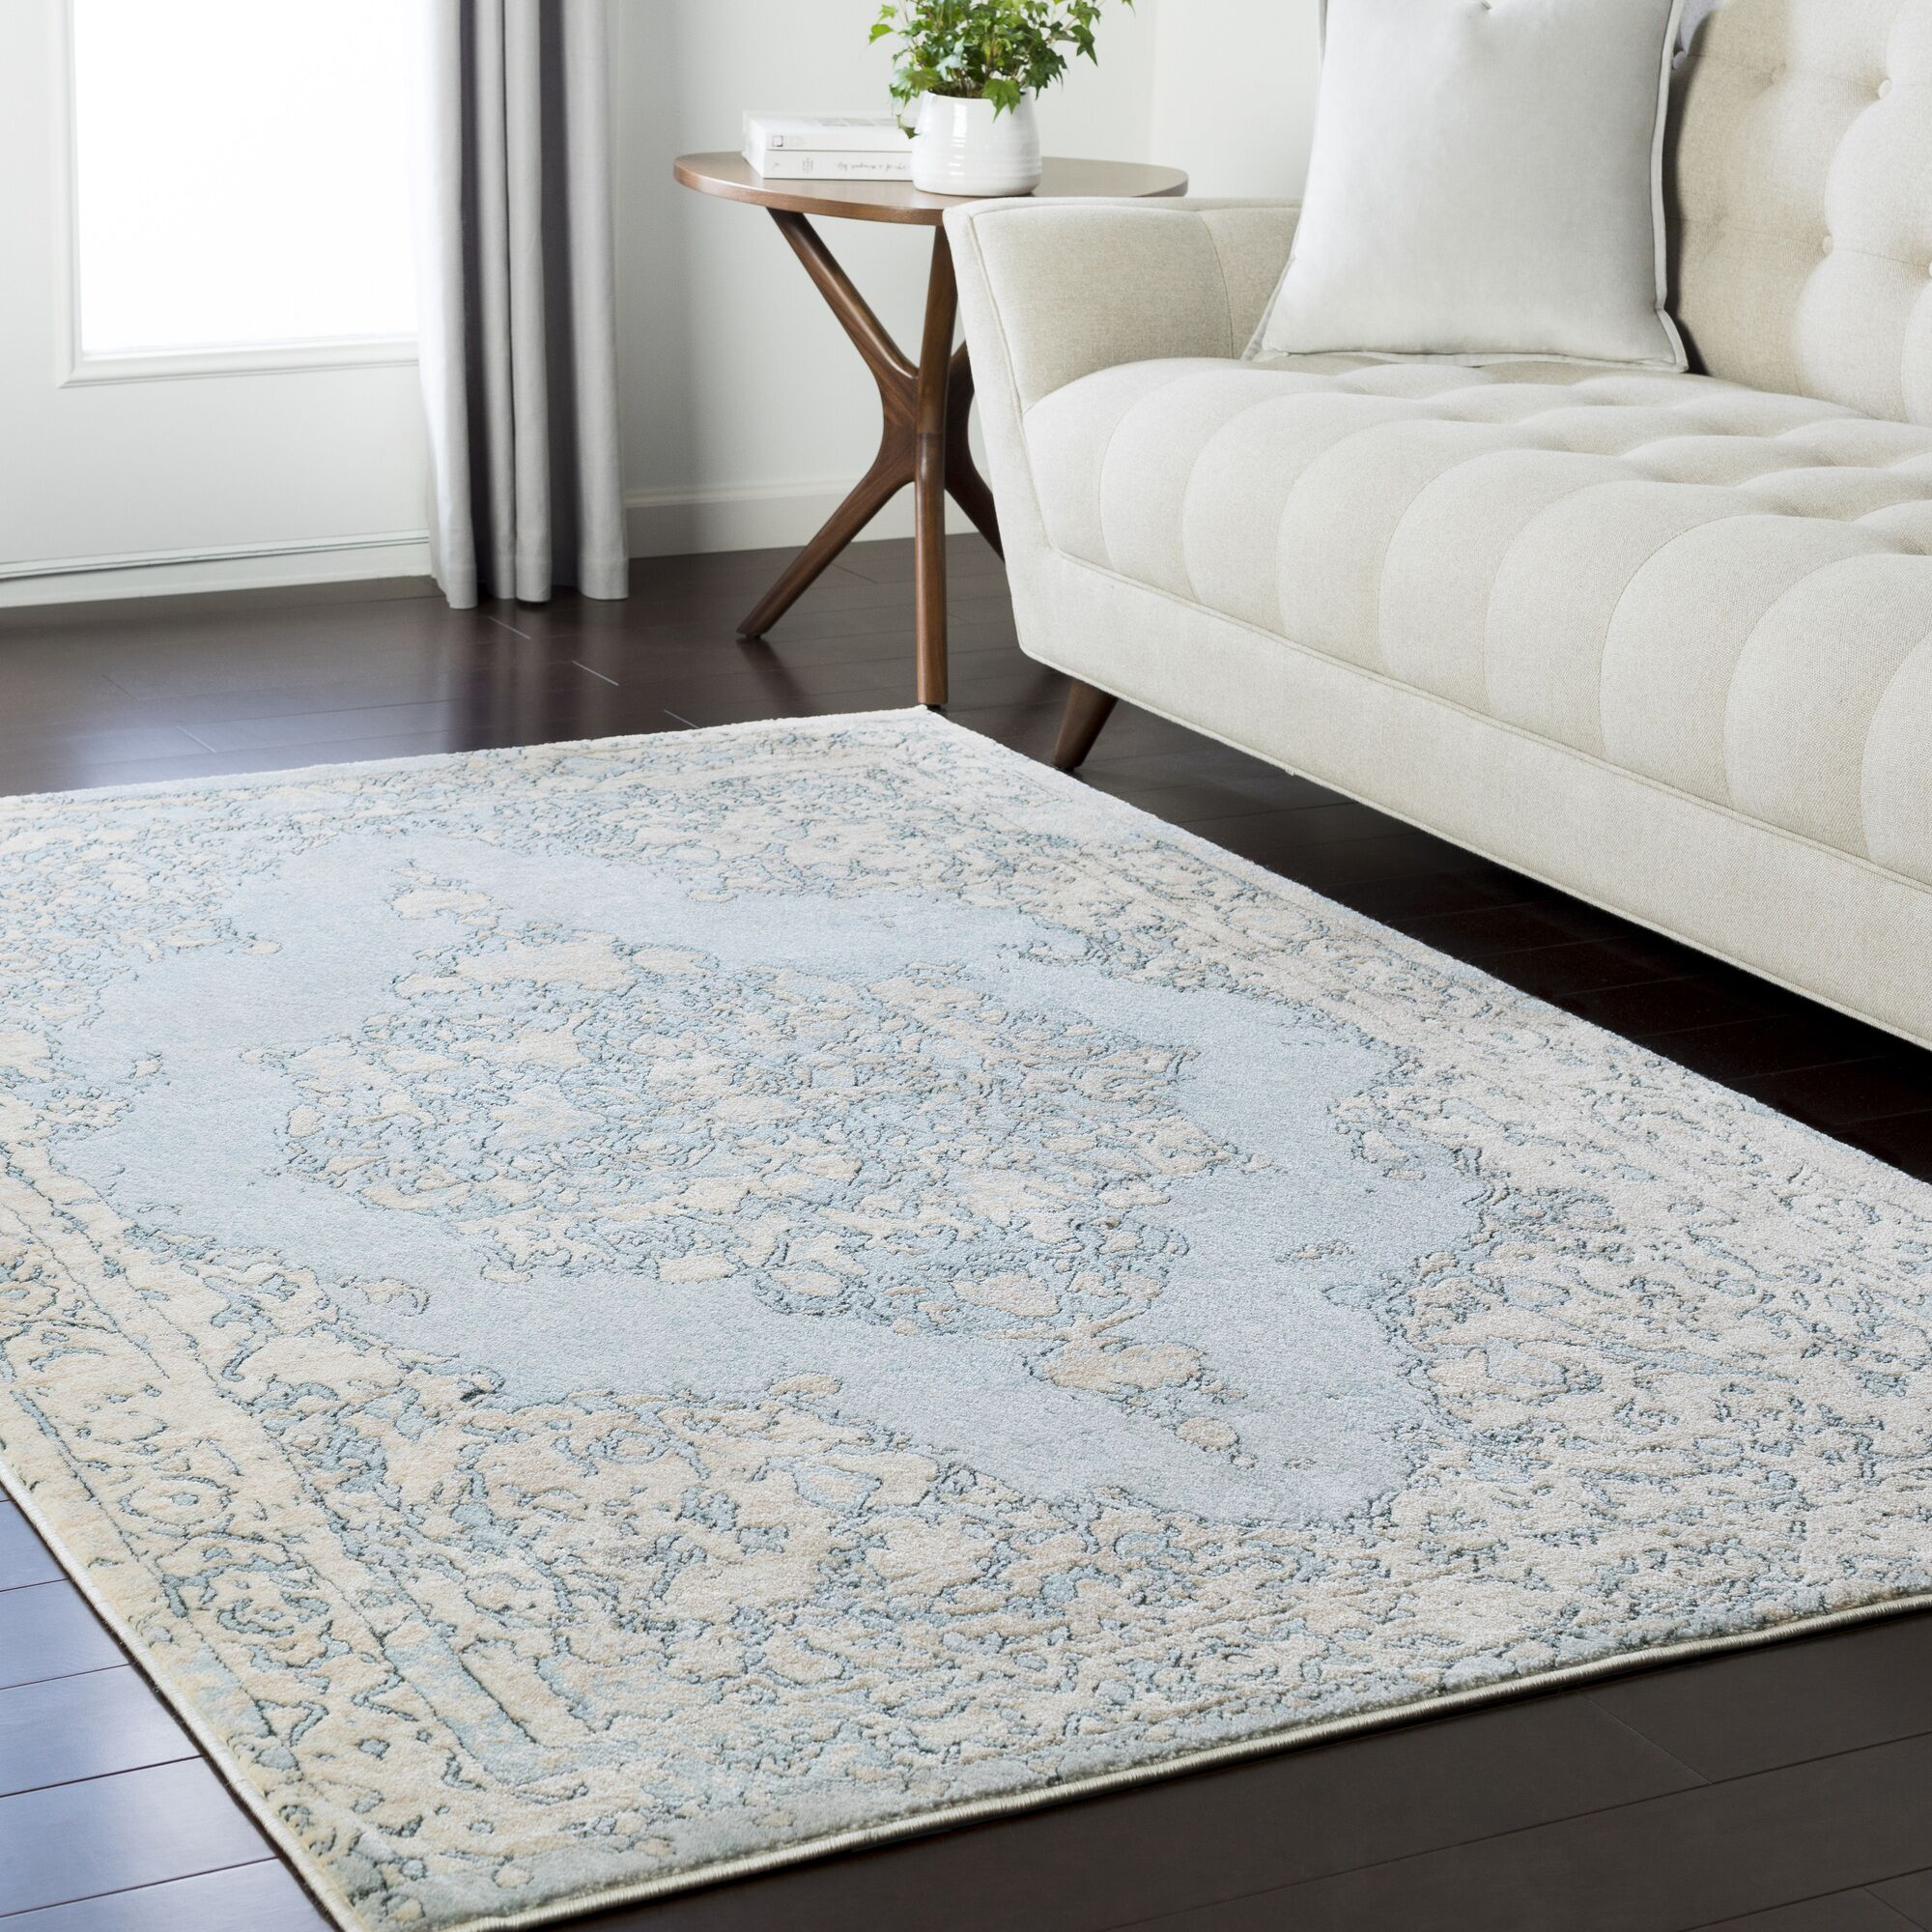 Synthia Blue/Green Area Rug Rug Size: Rectangle 6'7